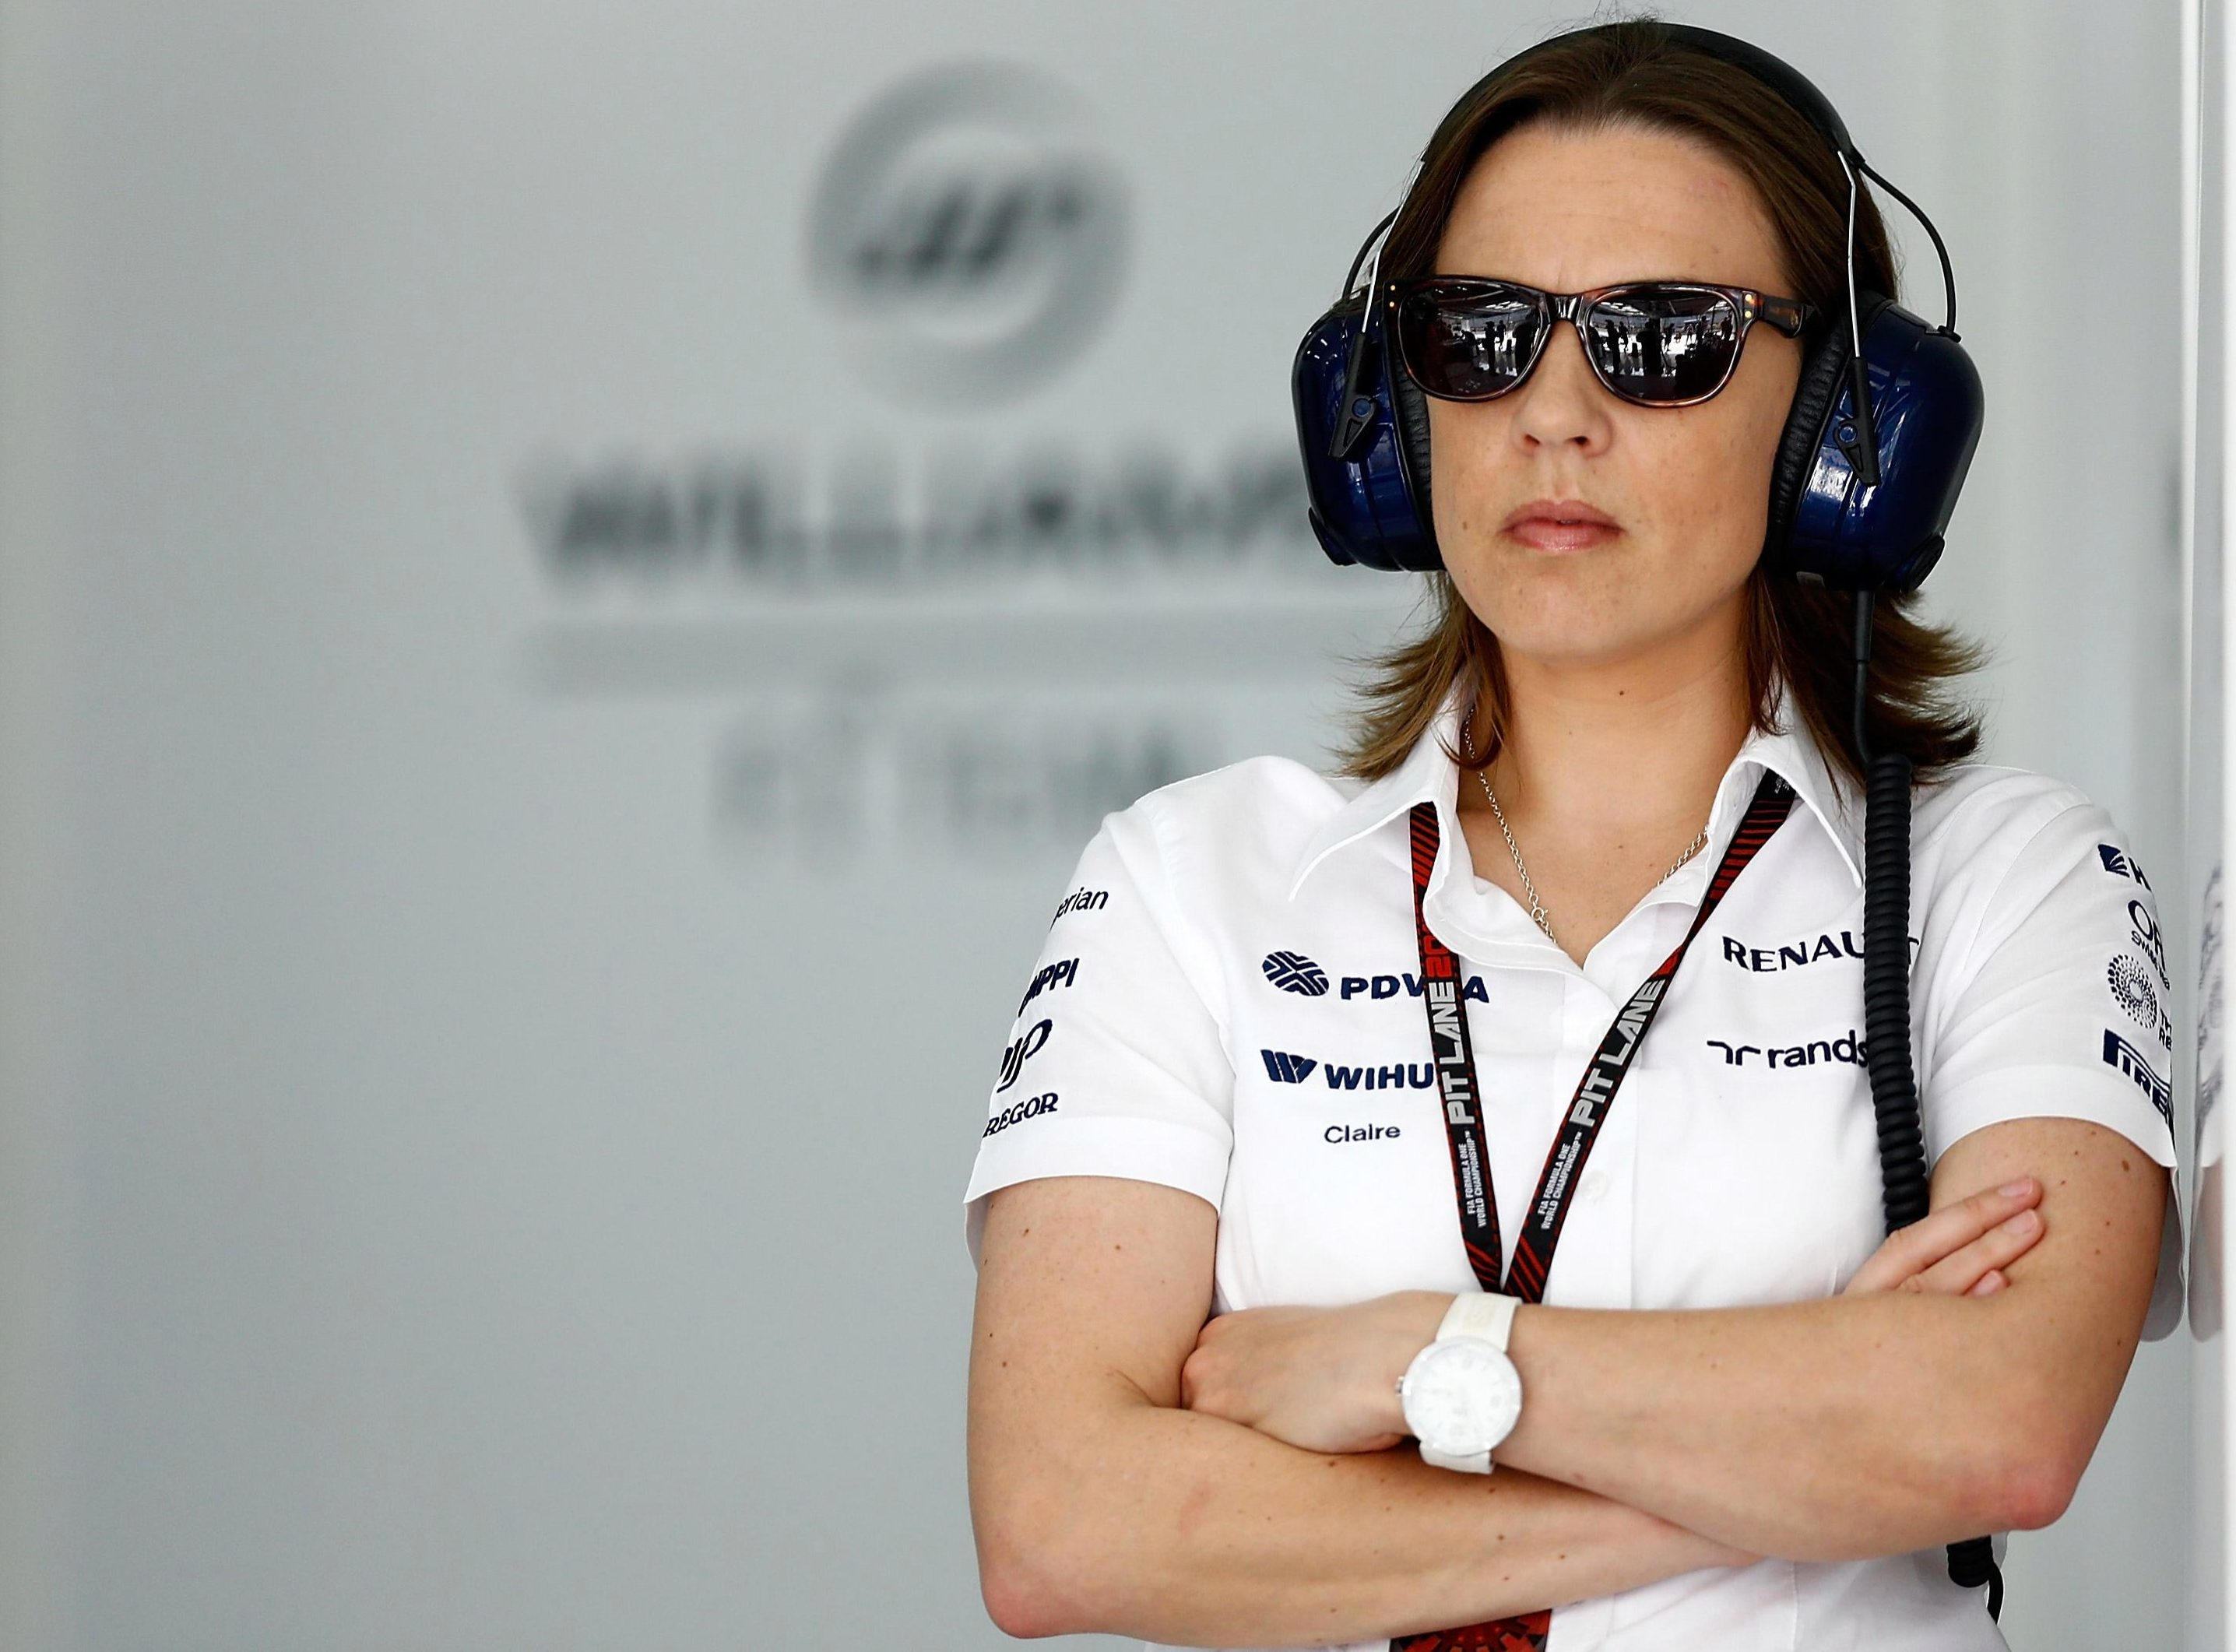 Life on an F1 team is tough for Claire Williams but she will not quit